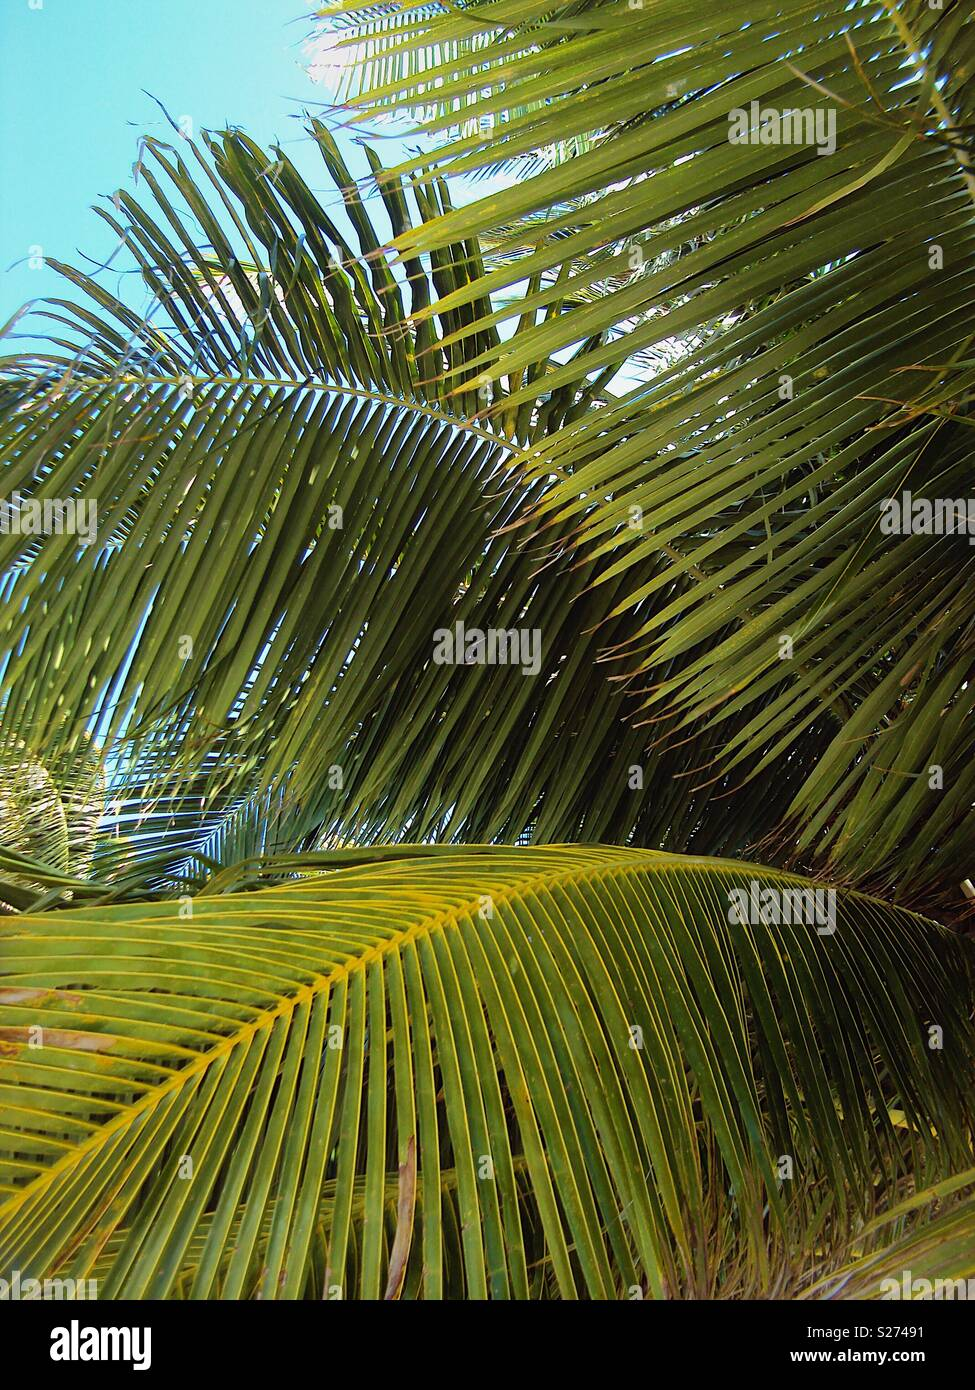 Green palm tree fronds in the sunshine - Stock Image